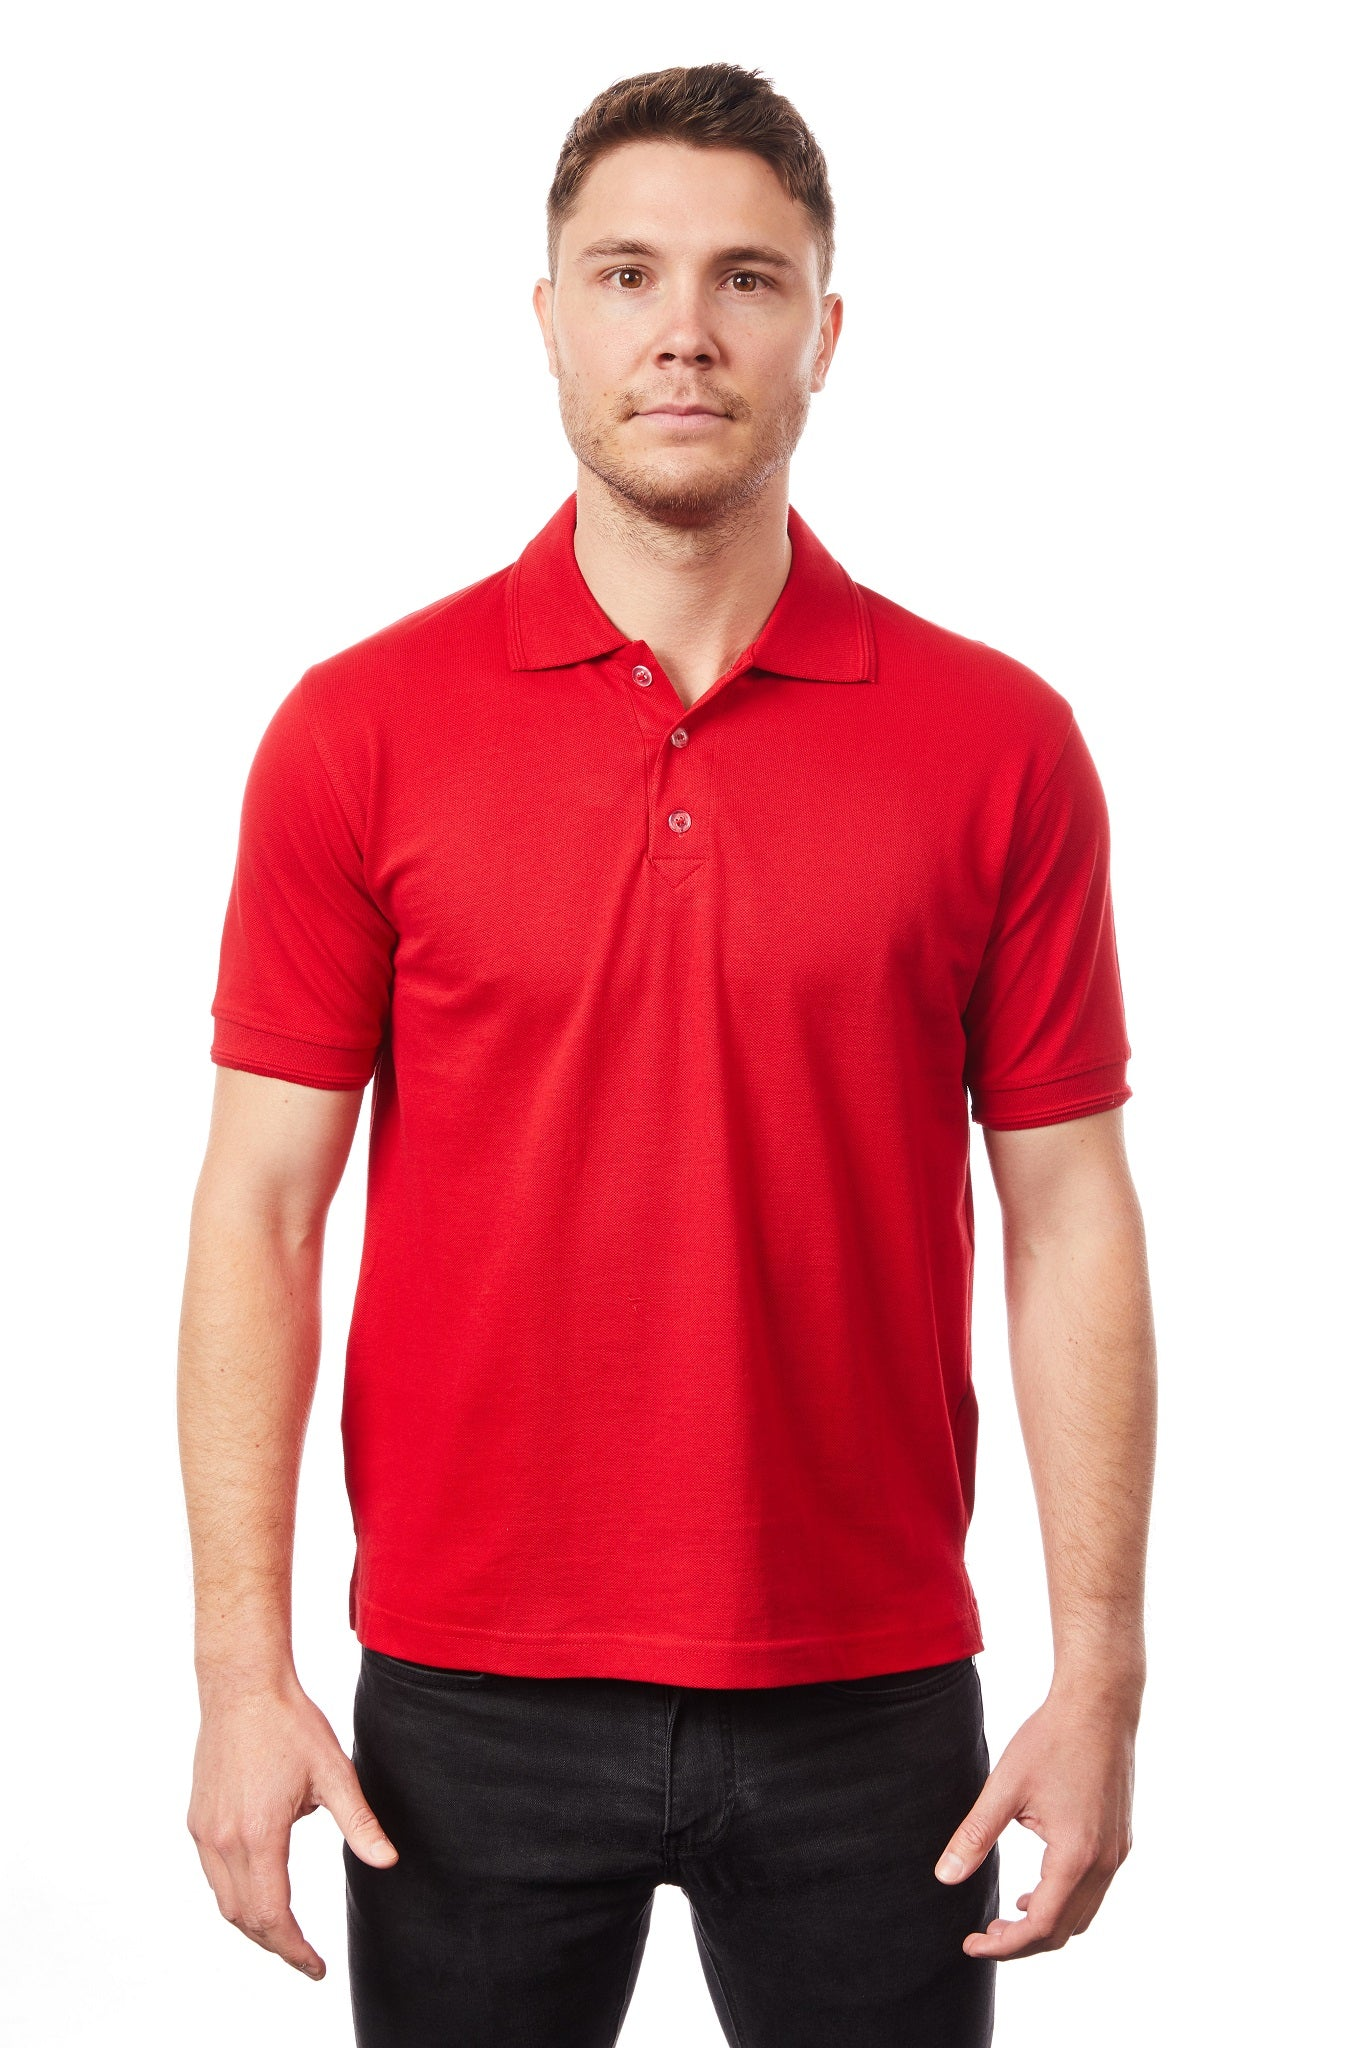 Tipsy Koala Men's Red Polo